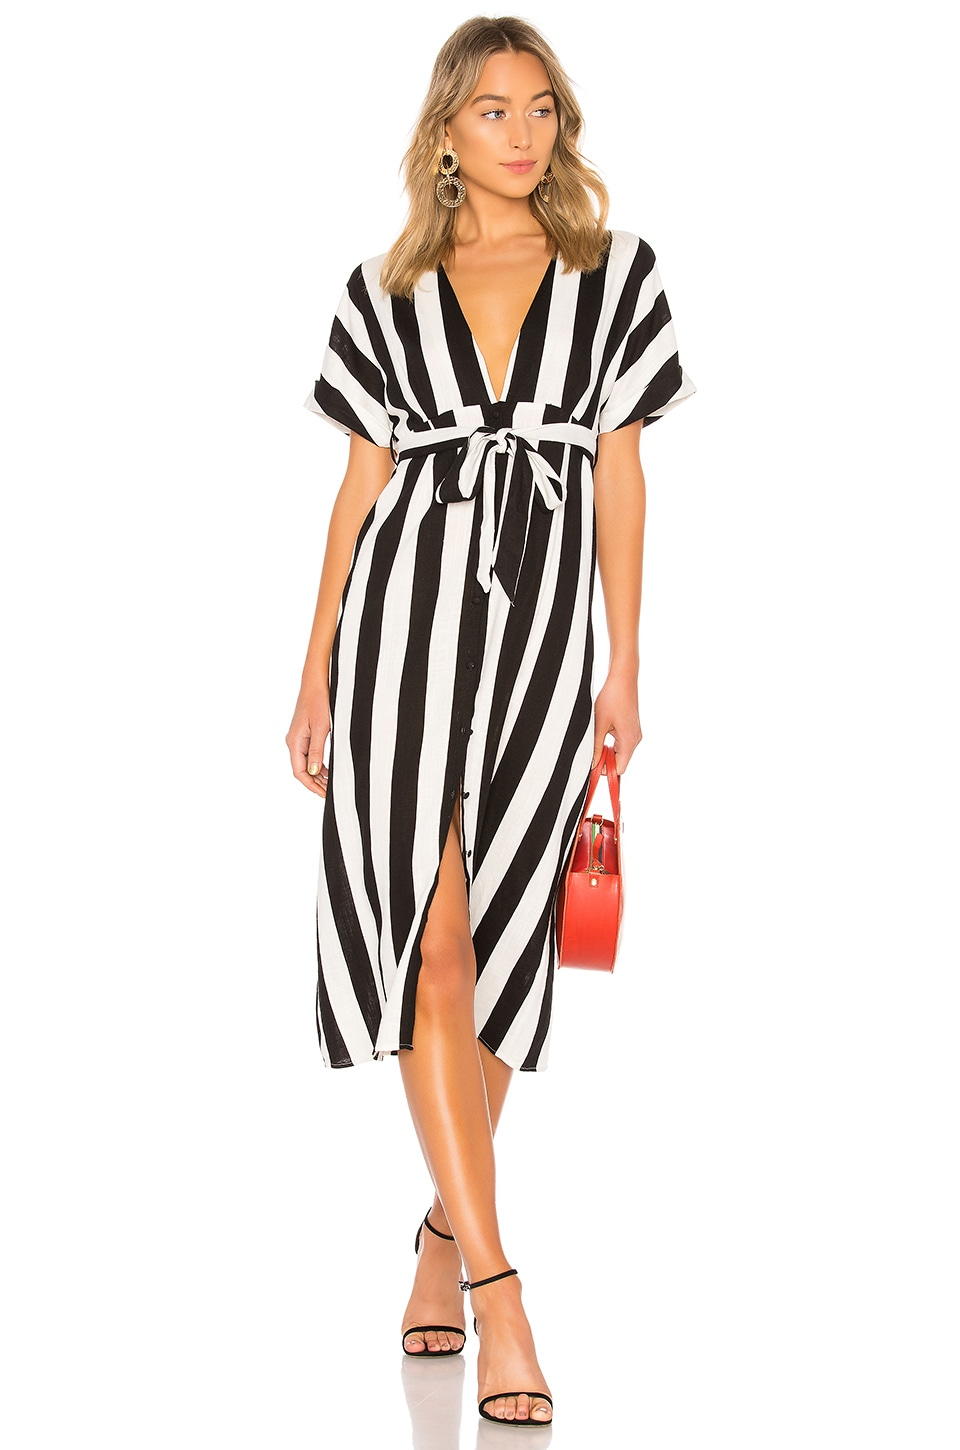 Bardot Adley Buttoned Dress in Black & White